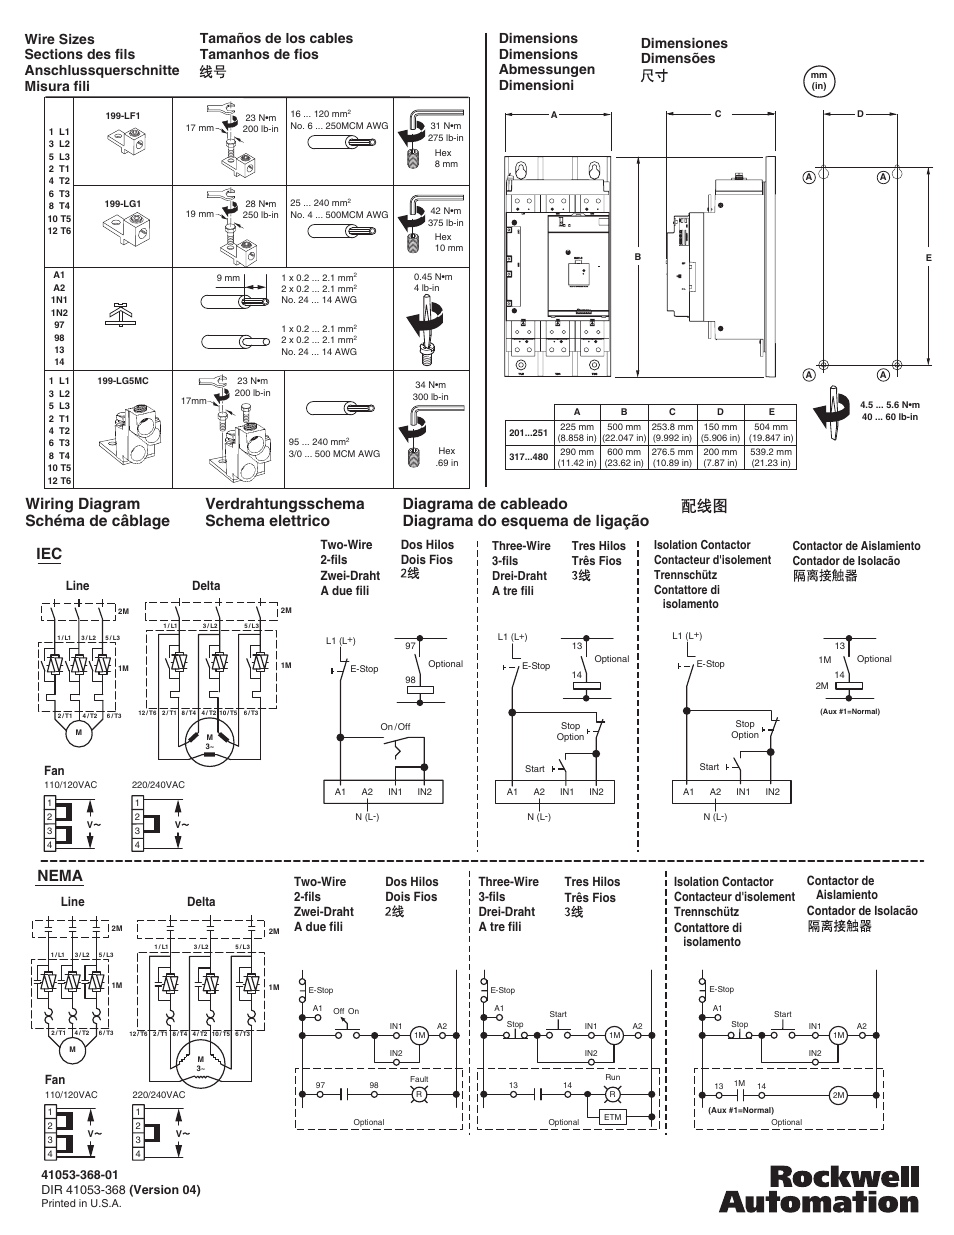 rockwell automation 150 smc 3 201a 480a soft starter 3 phase installations page4 wiring diagram sch�ma de c�blage iec, nema, verdrahtungsschema smc fan wiring diagram at gsmx.co